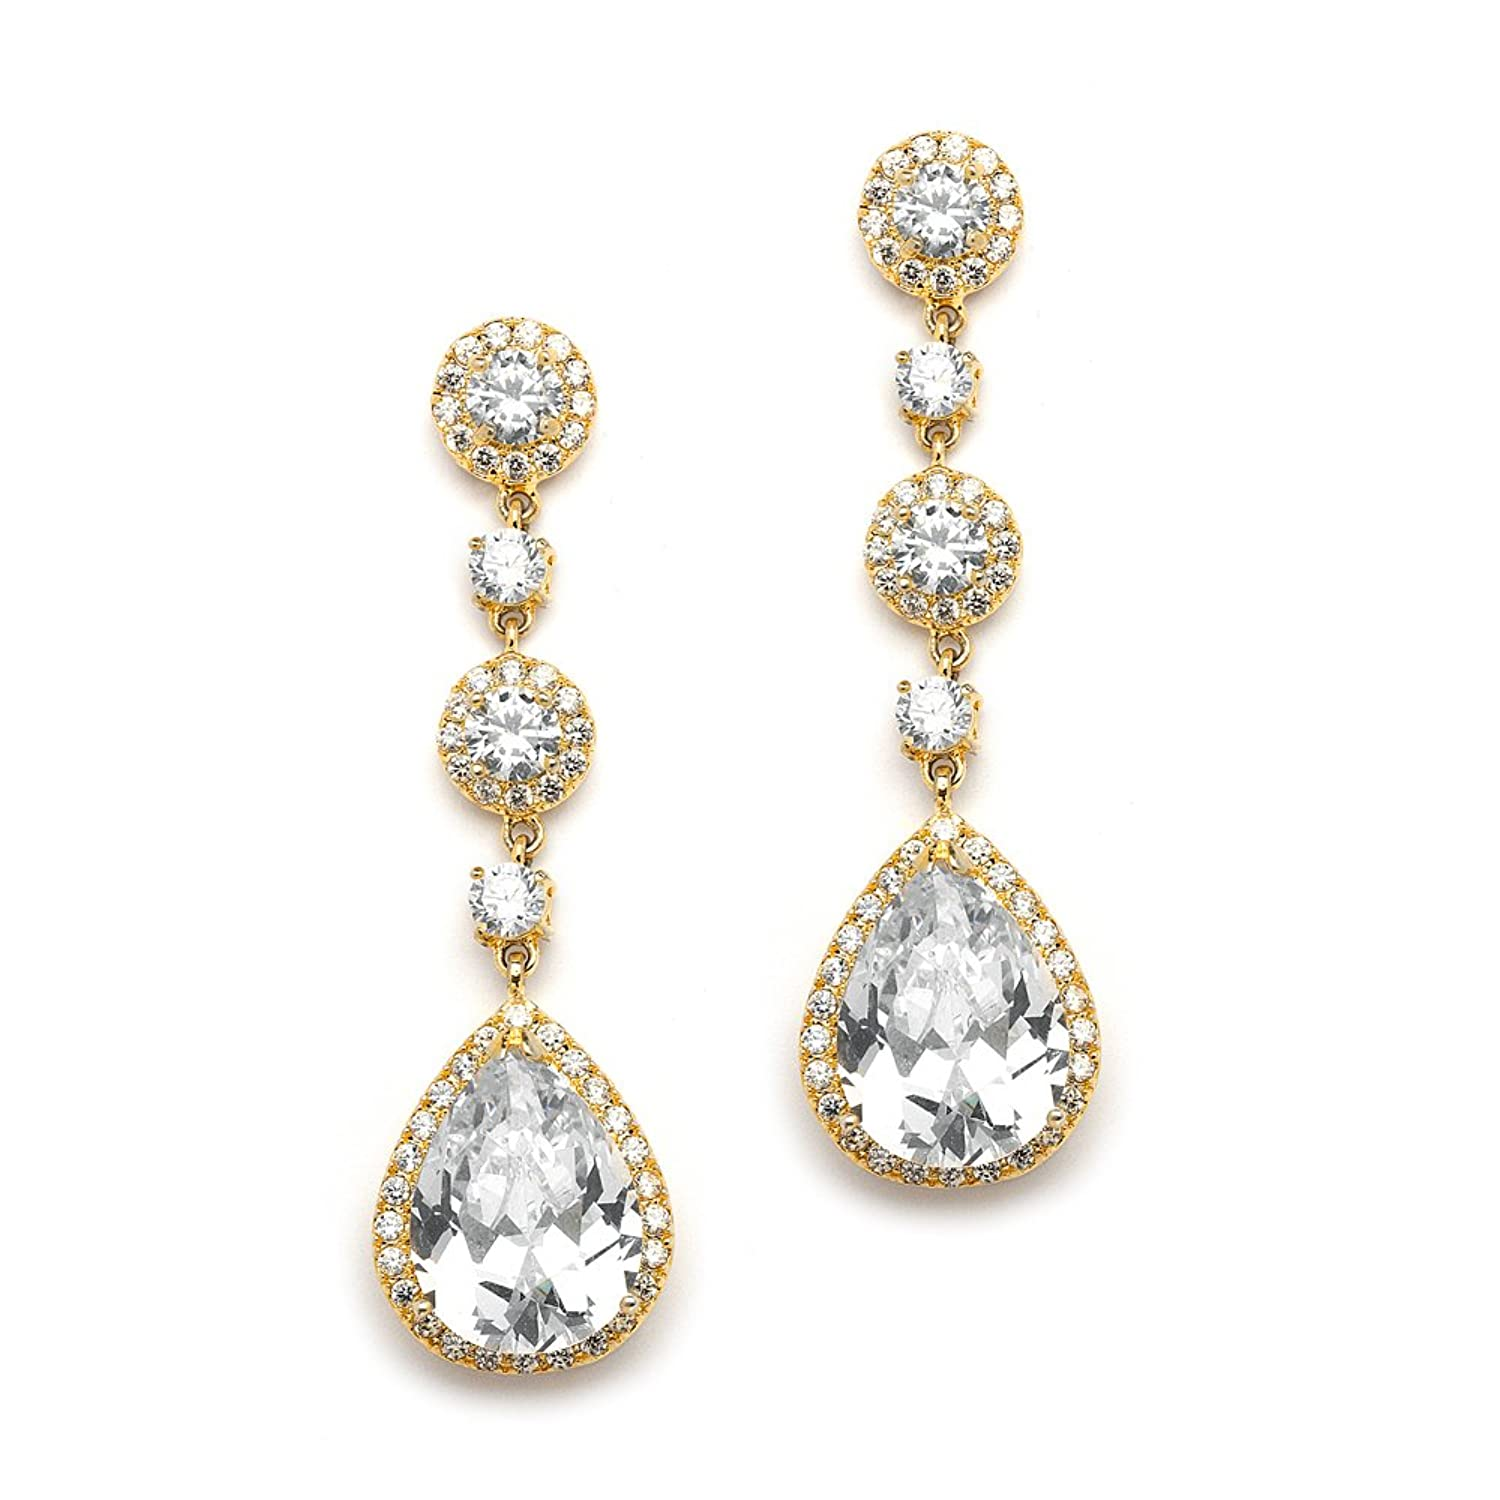 Mariell Genuine 14K Gold Plated Cubic Zirconia Dangle Earrings for Brides with Pave Pear-Shaped Drops